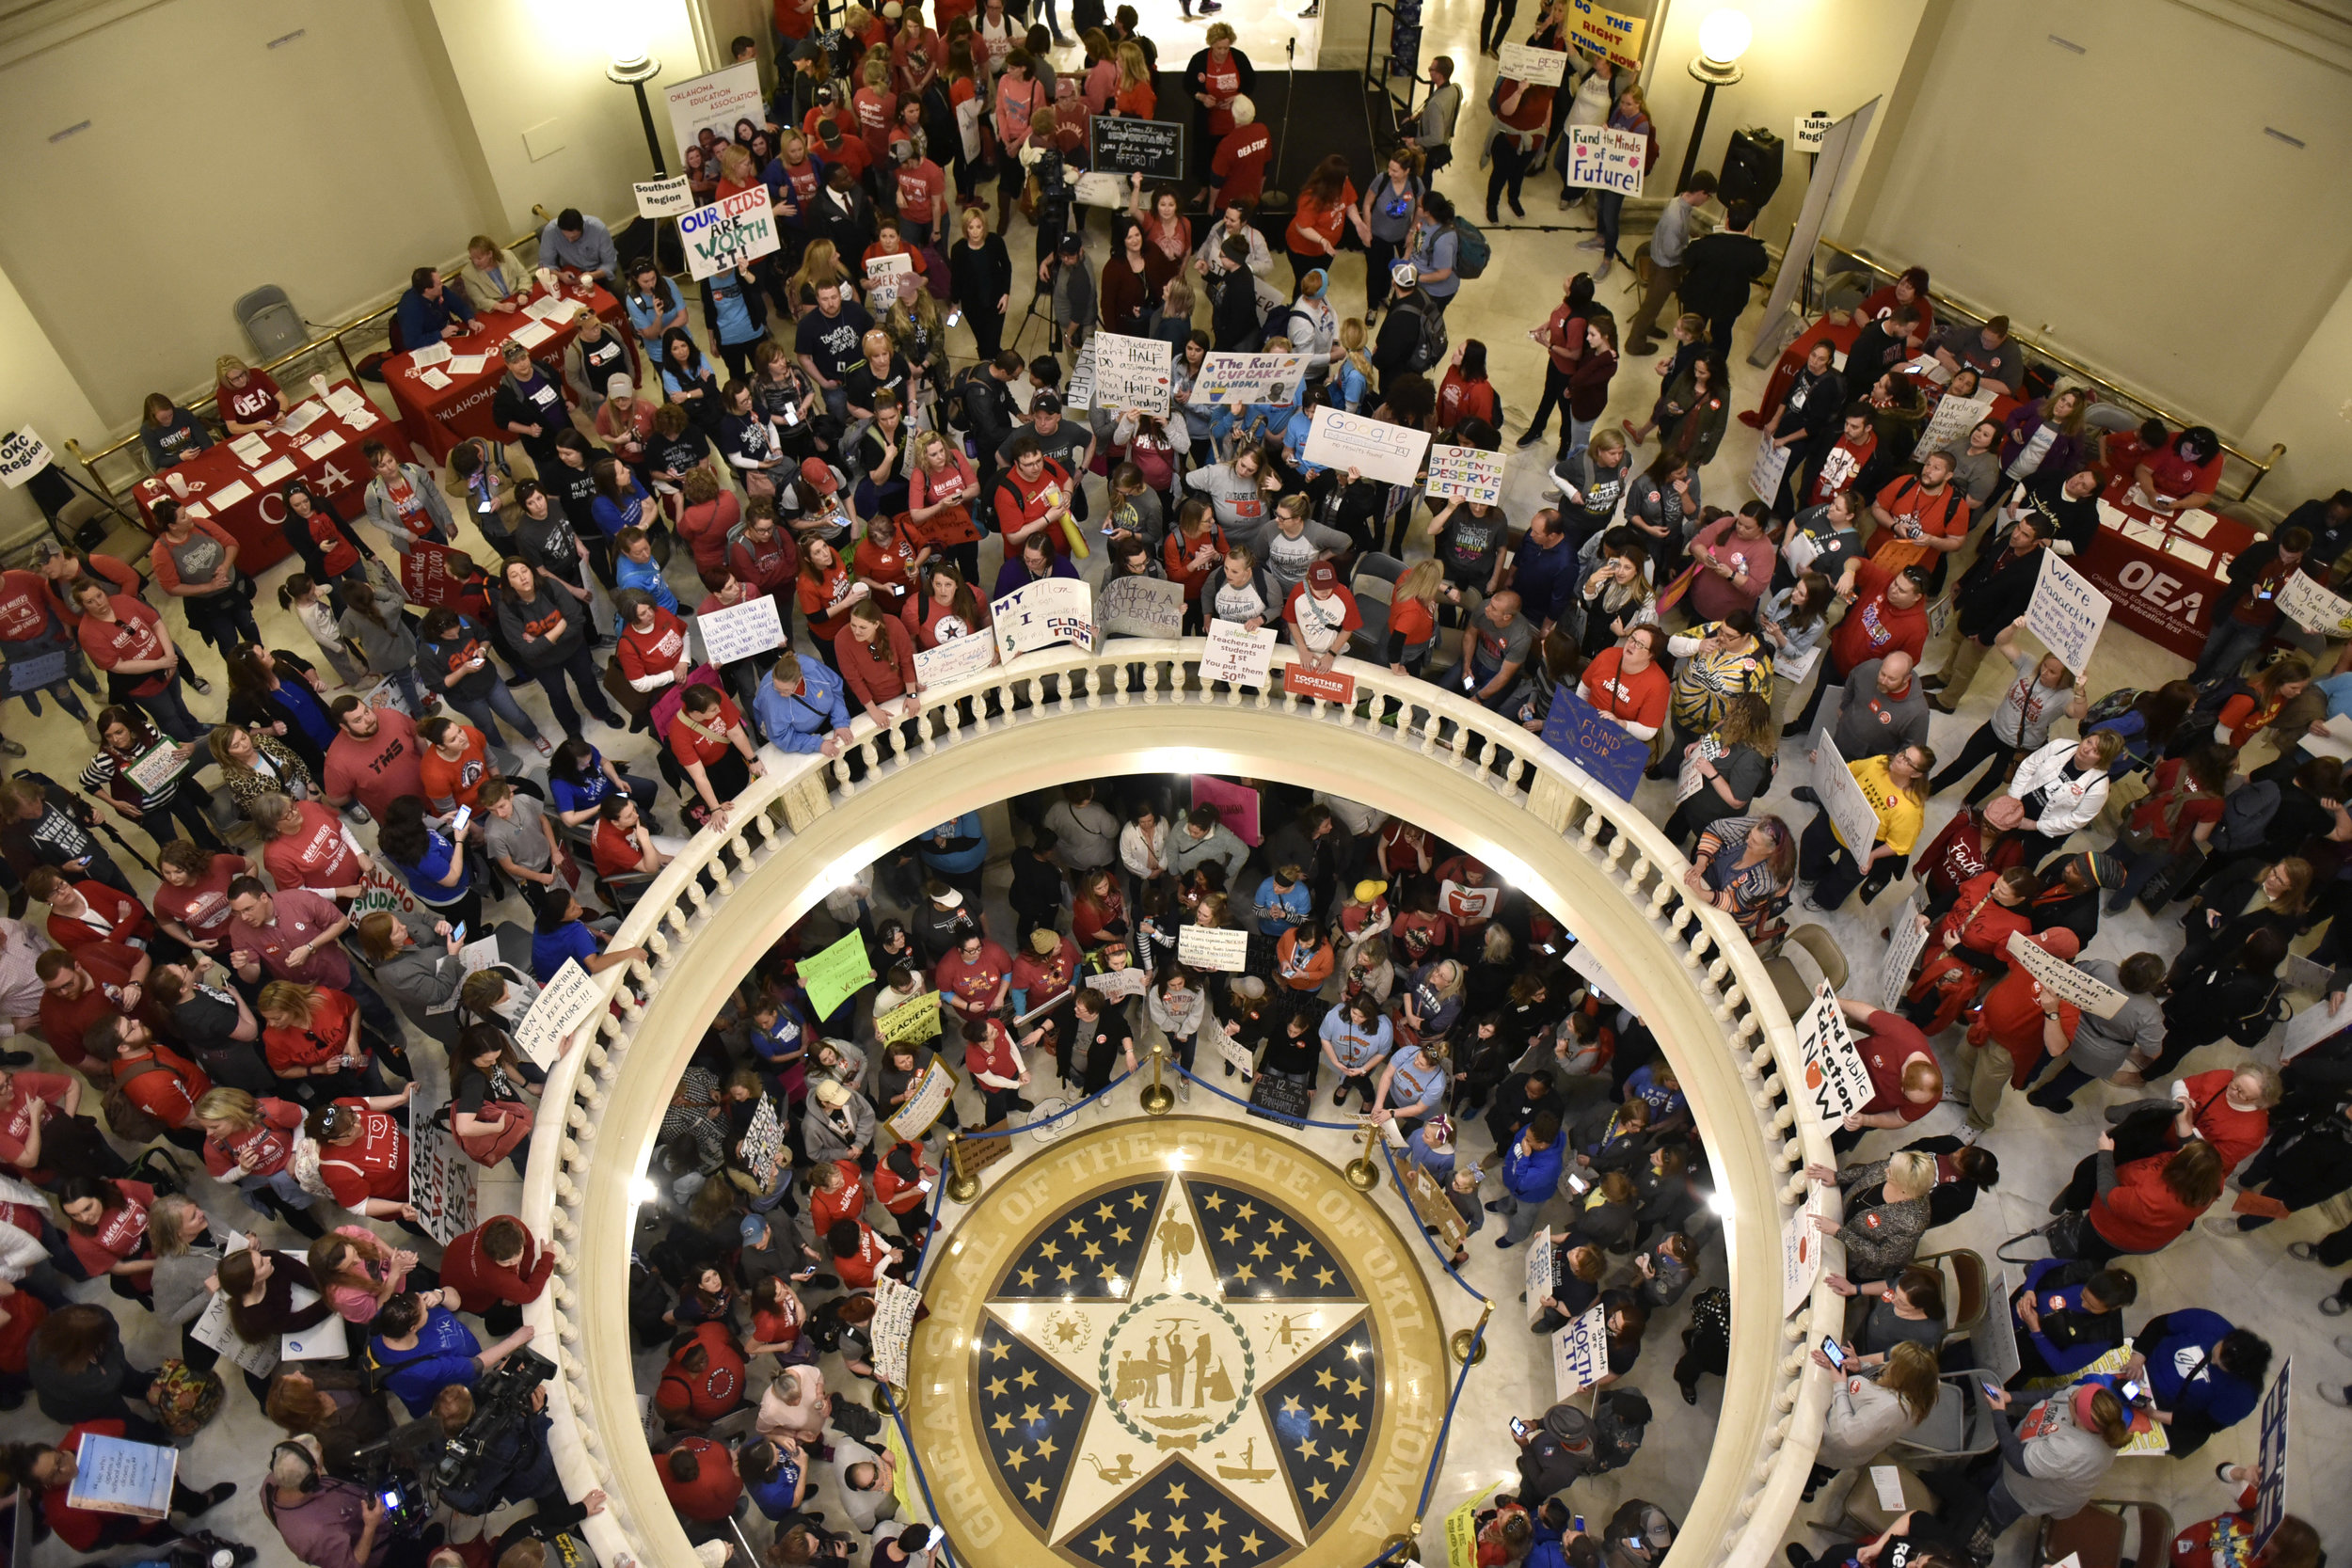 Teachers pack the state Capitol rotunda to capacity on the second day of a teacher walkout to demand higher pay and more funding for education in Oklahoma City, Oklahoma, U.S., April 3, 2018. REUTERS/Nick Oxford